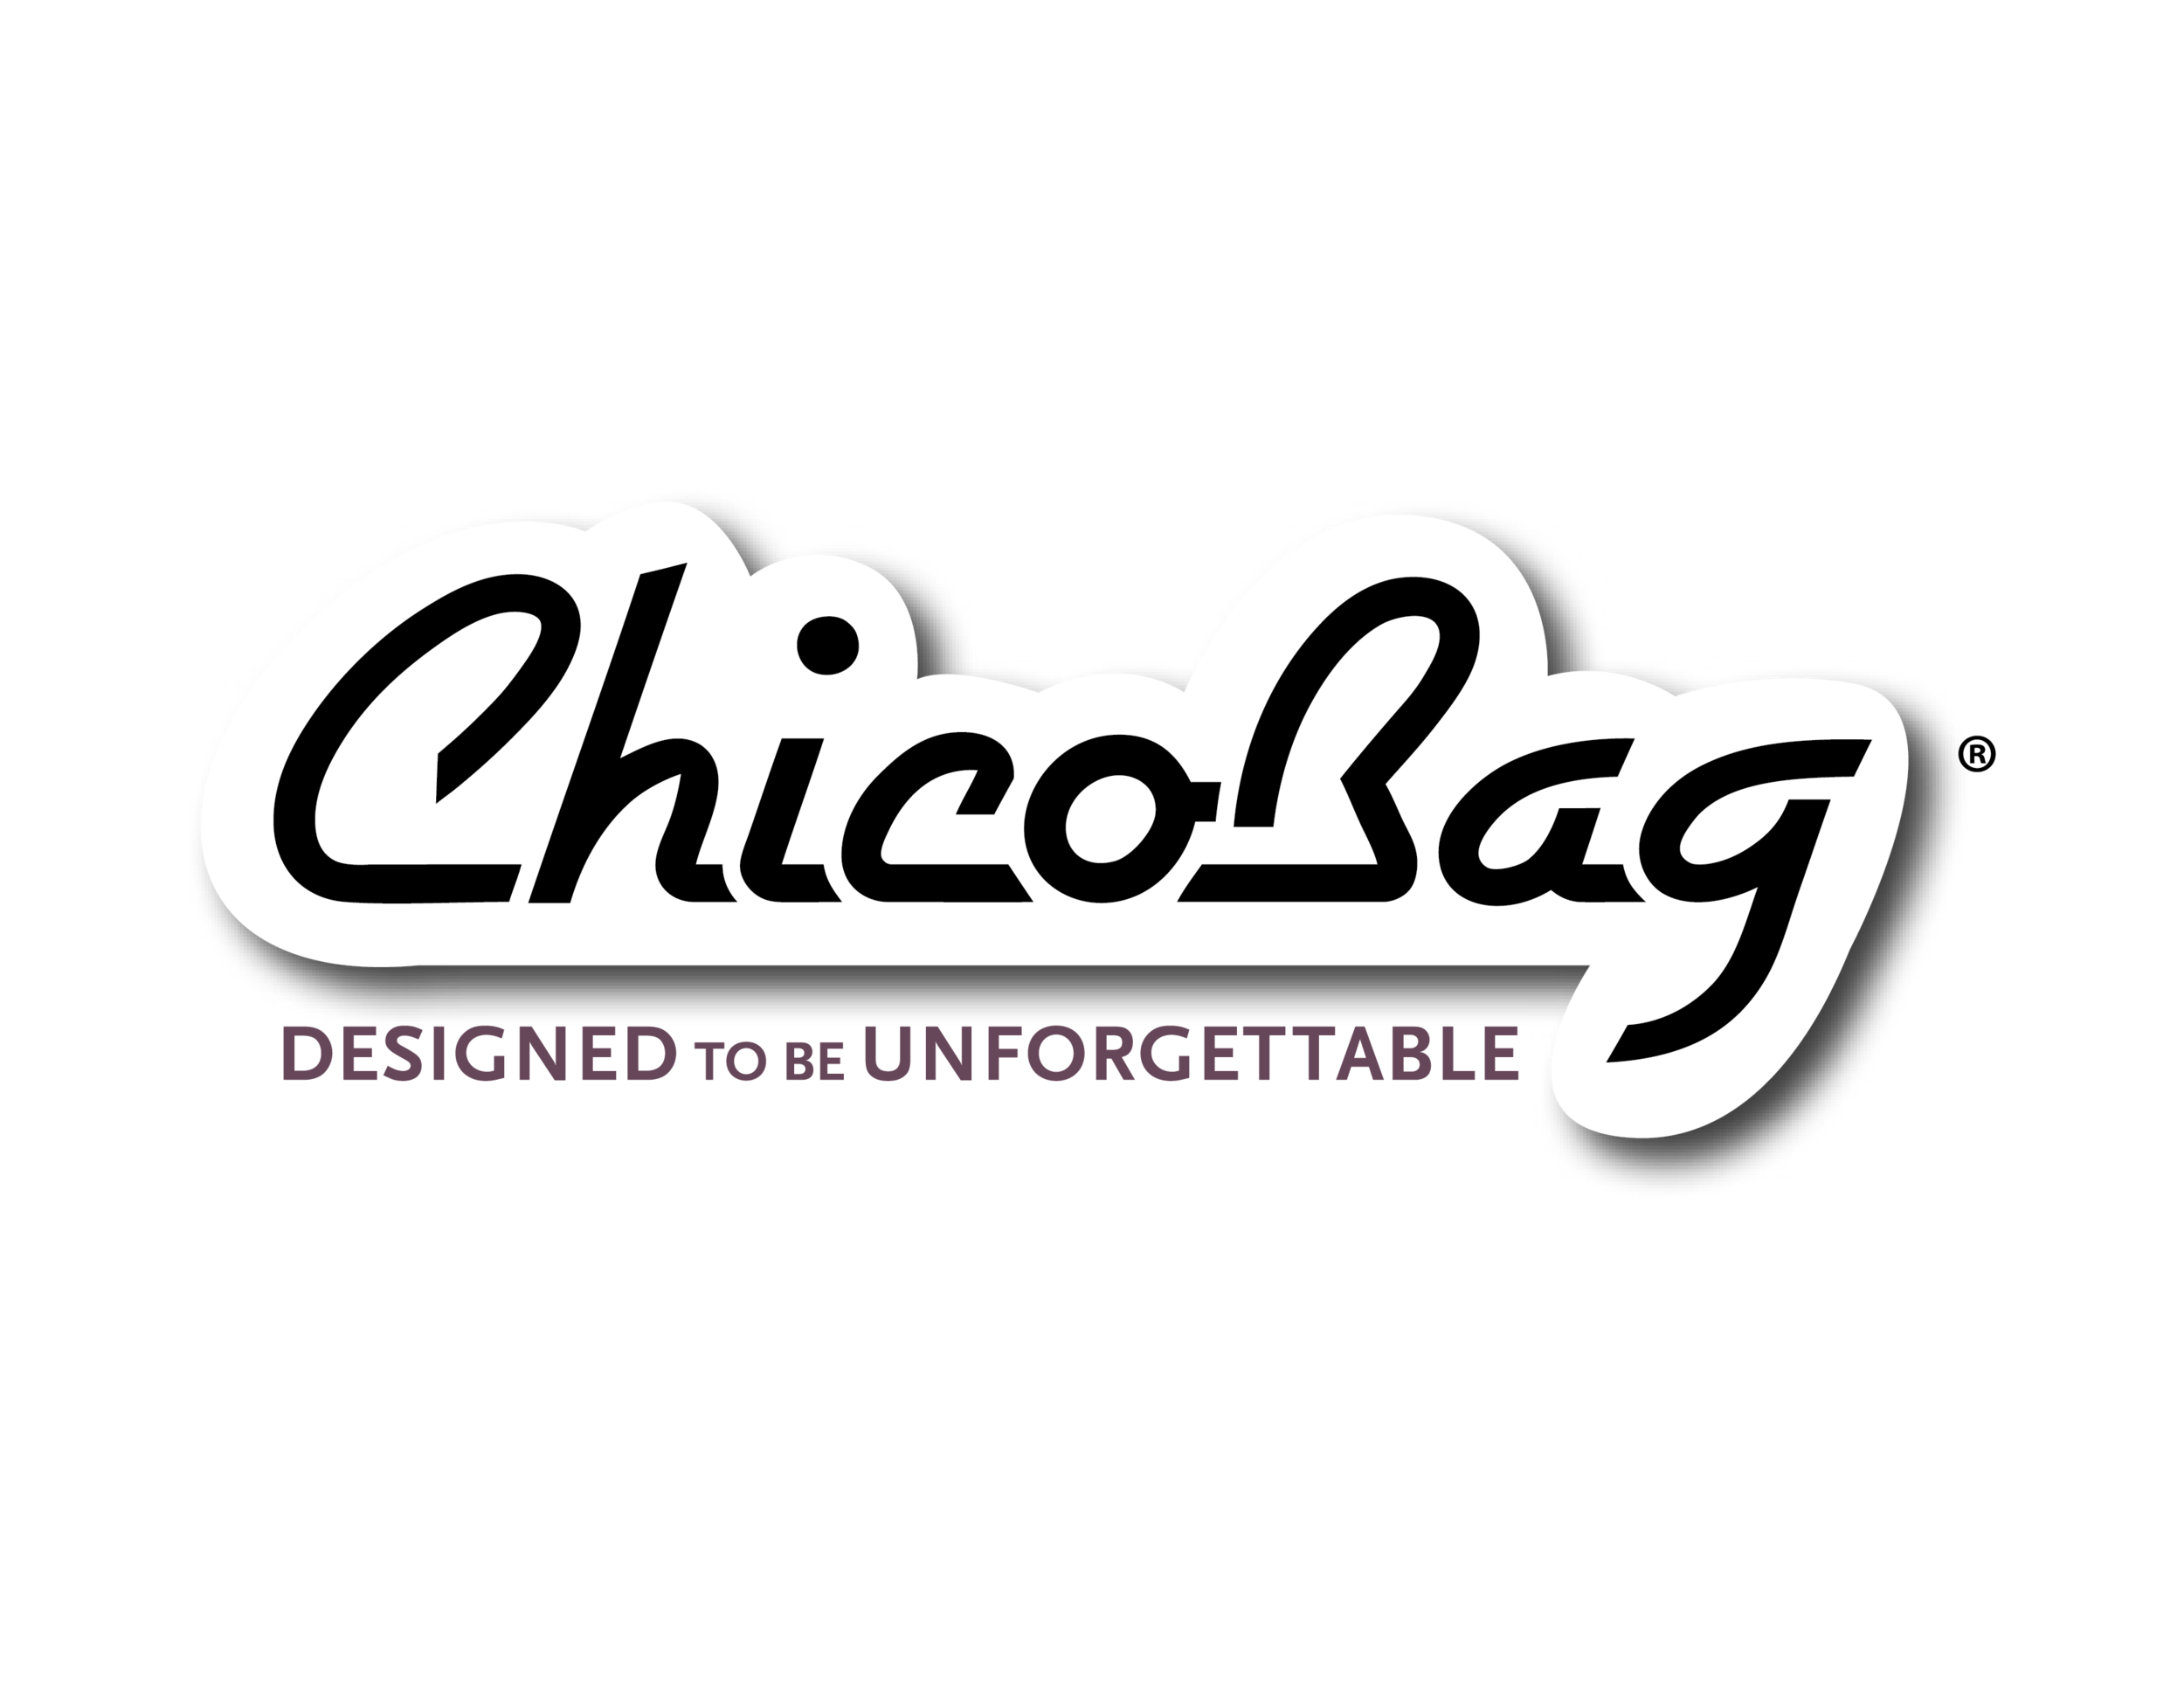 Set of 3 reusable sandwich bags from <i>Chico Bags</i>